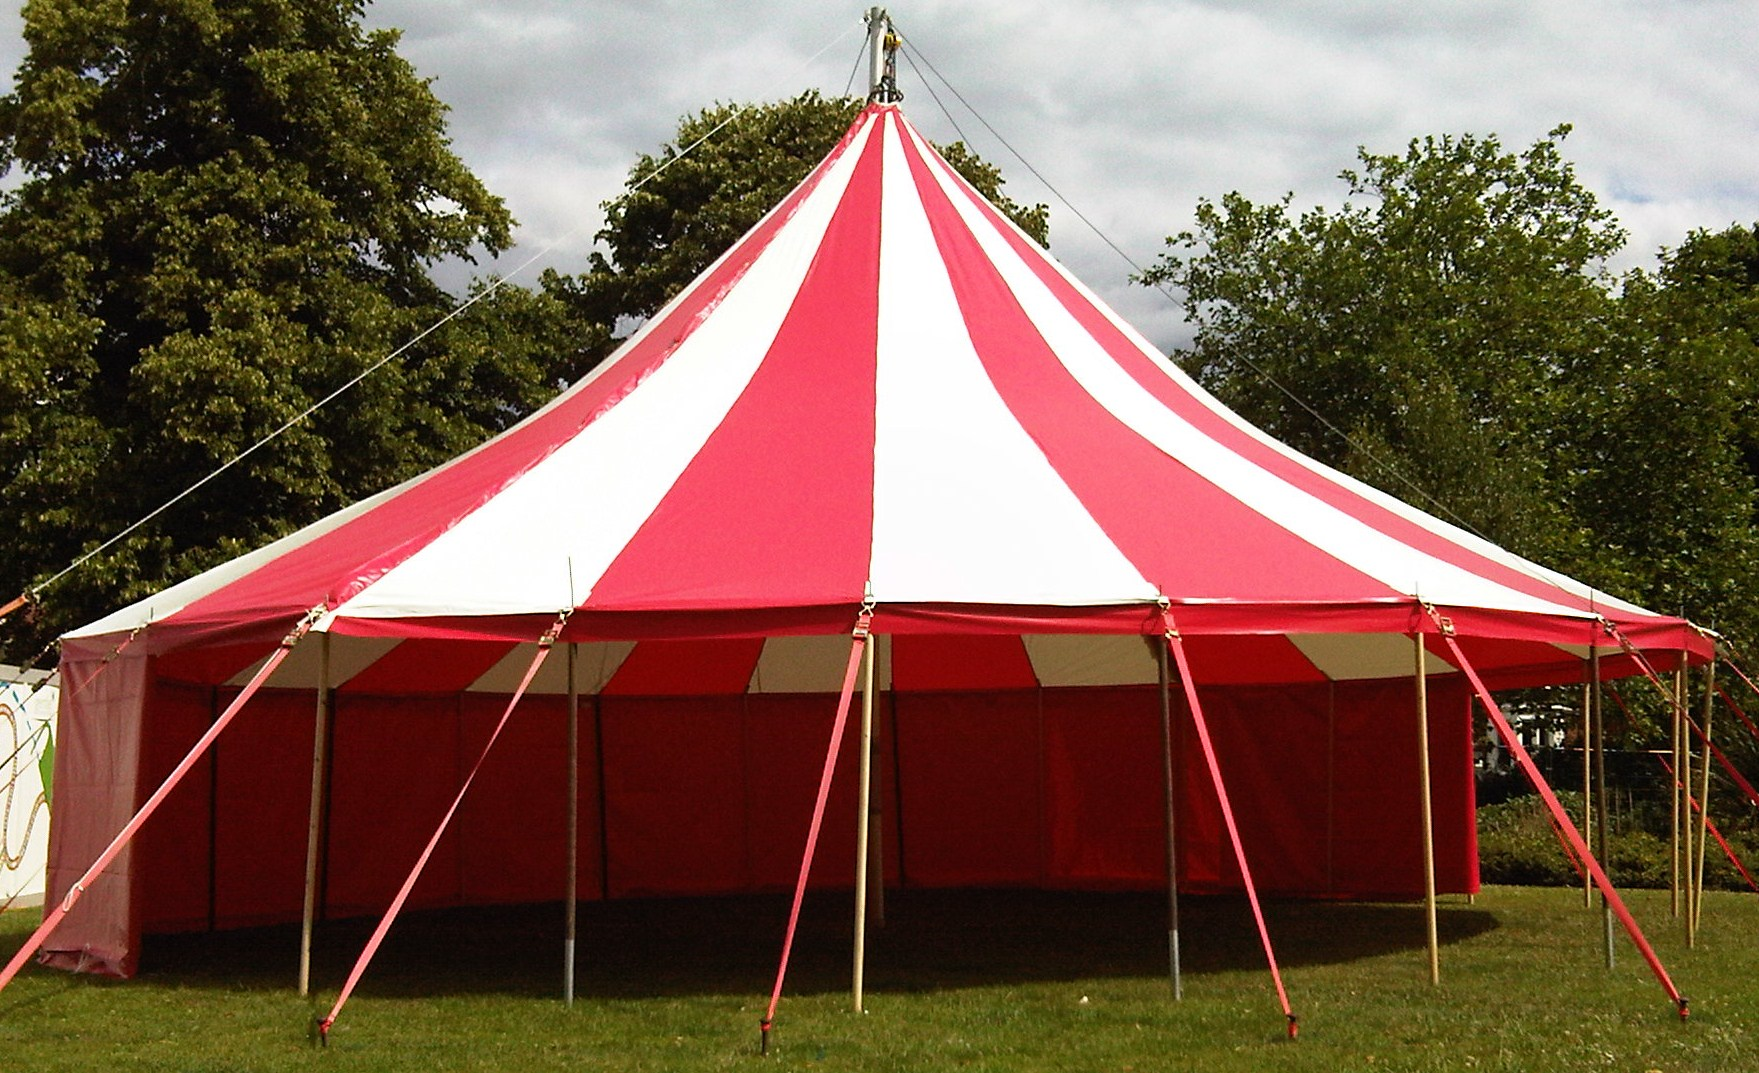 Big top hire, circus shows, marquee hire